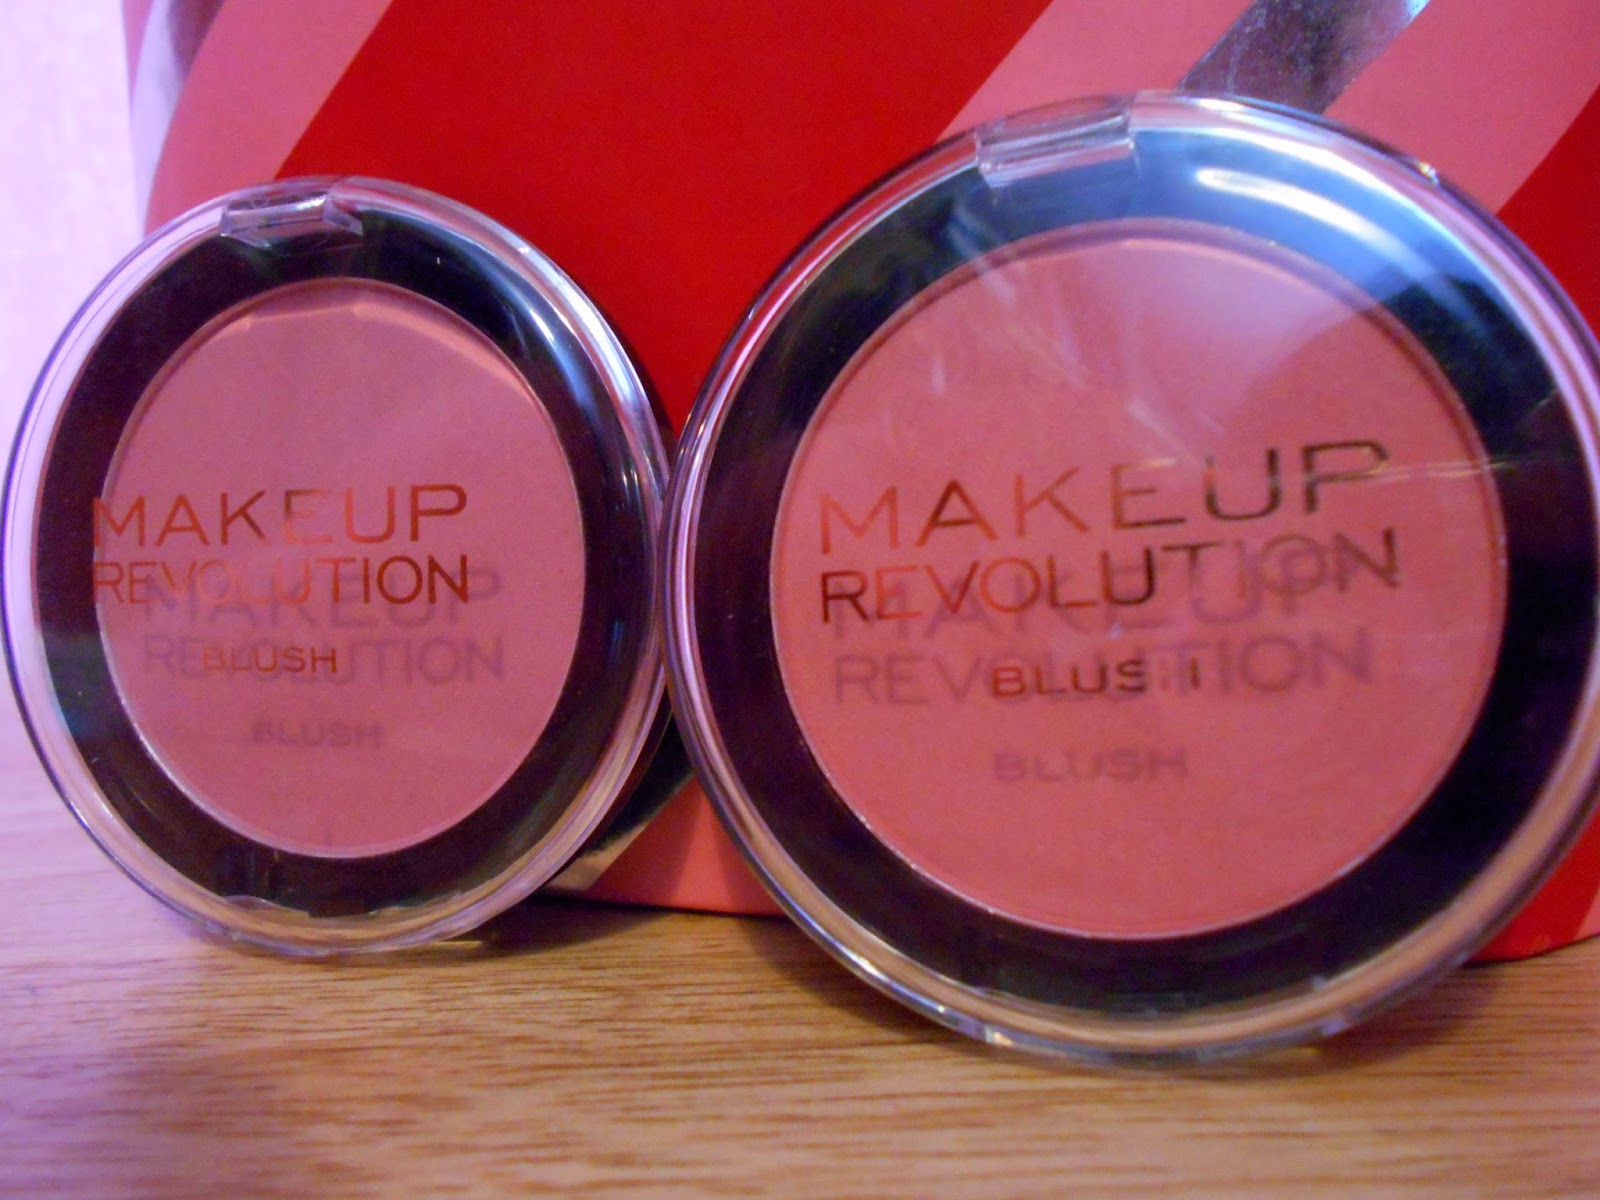 Makeup Revolution Powder Blush - Now! And Sugar